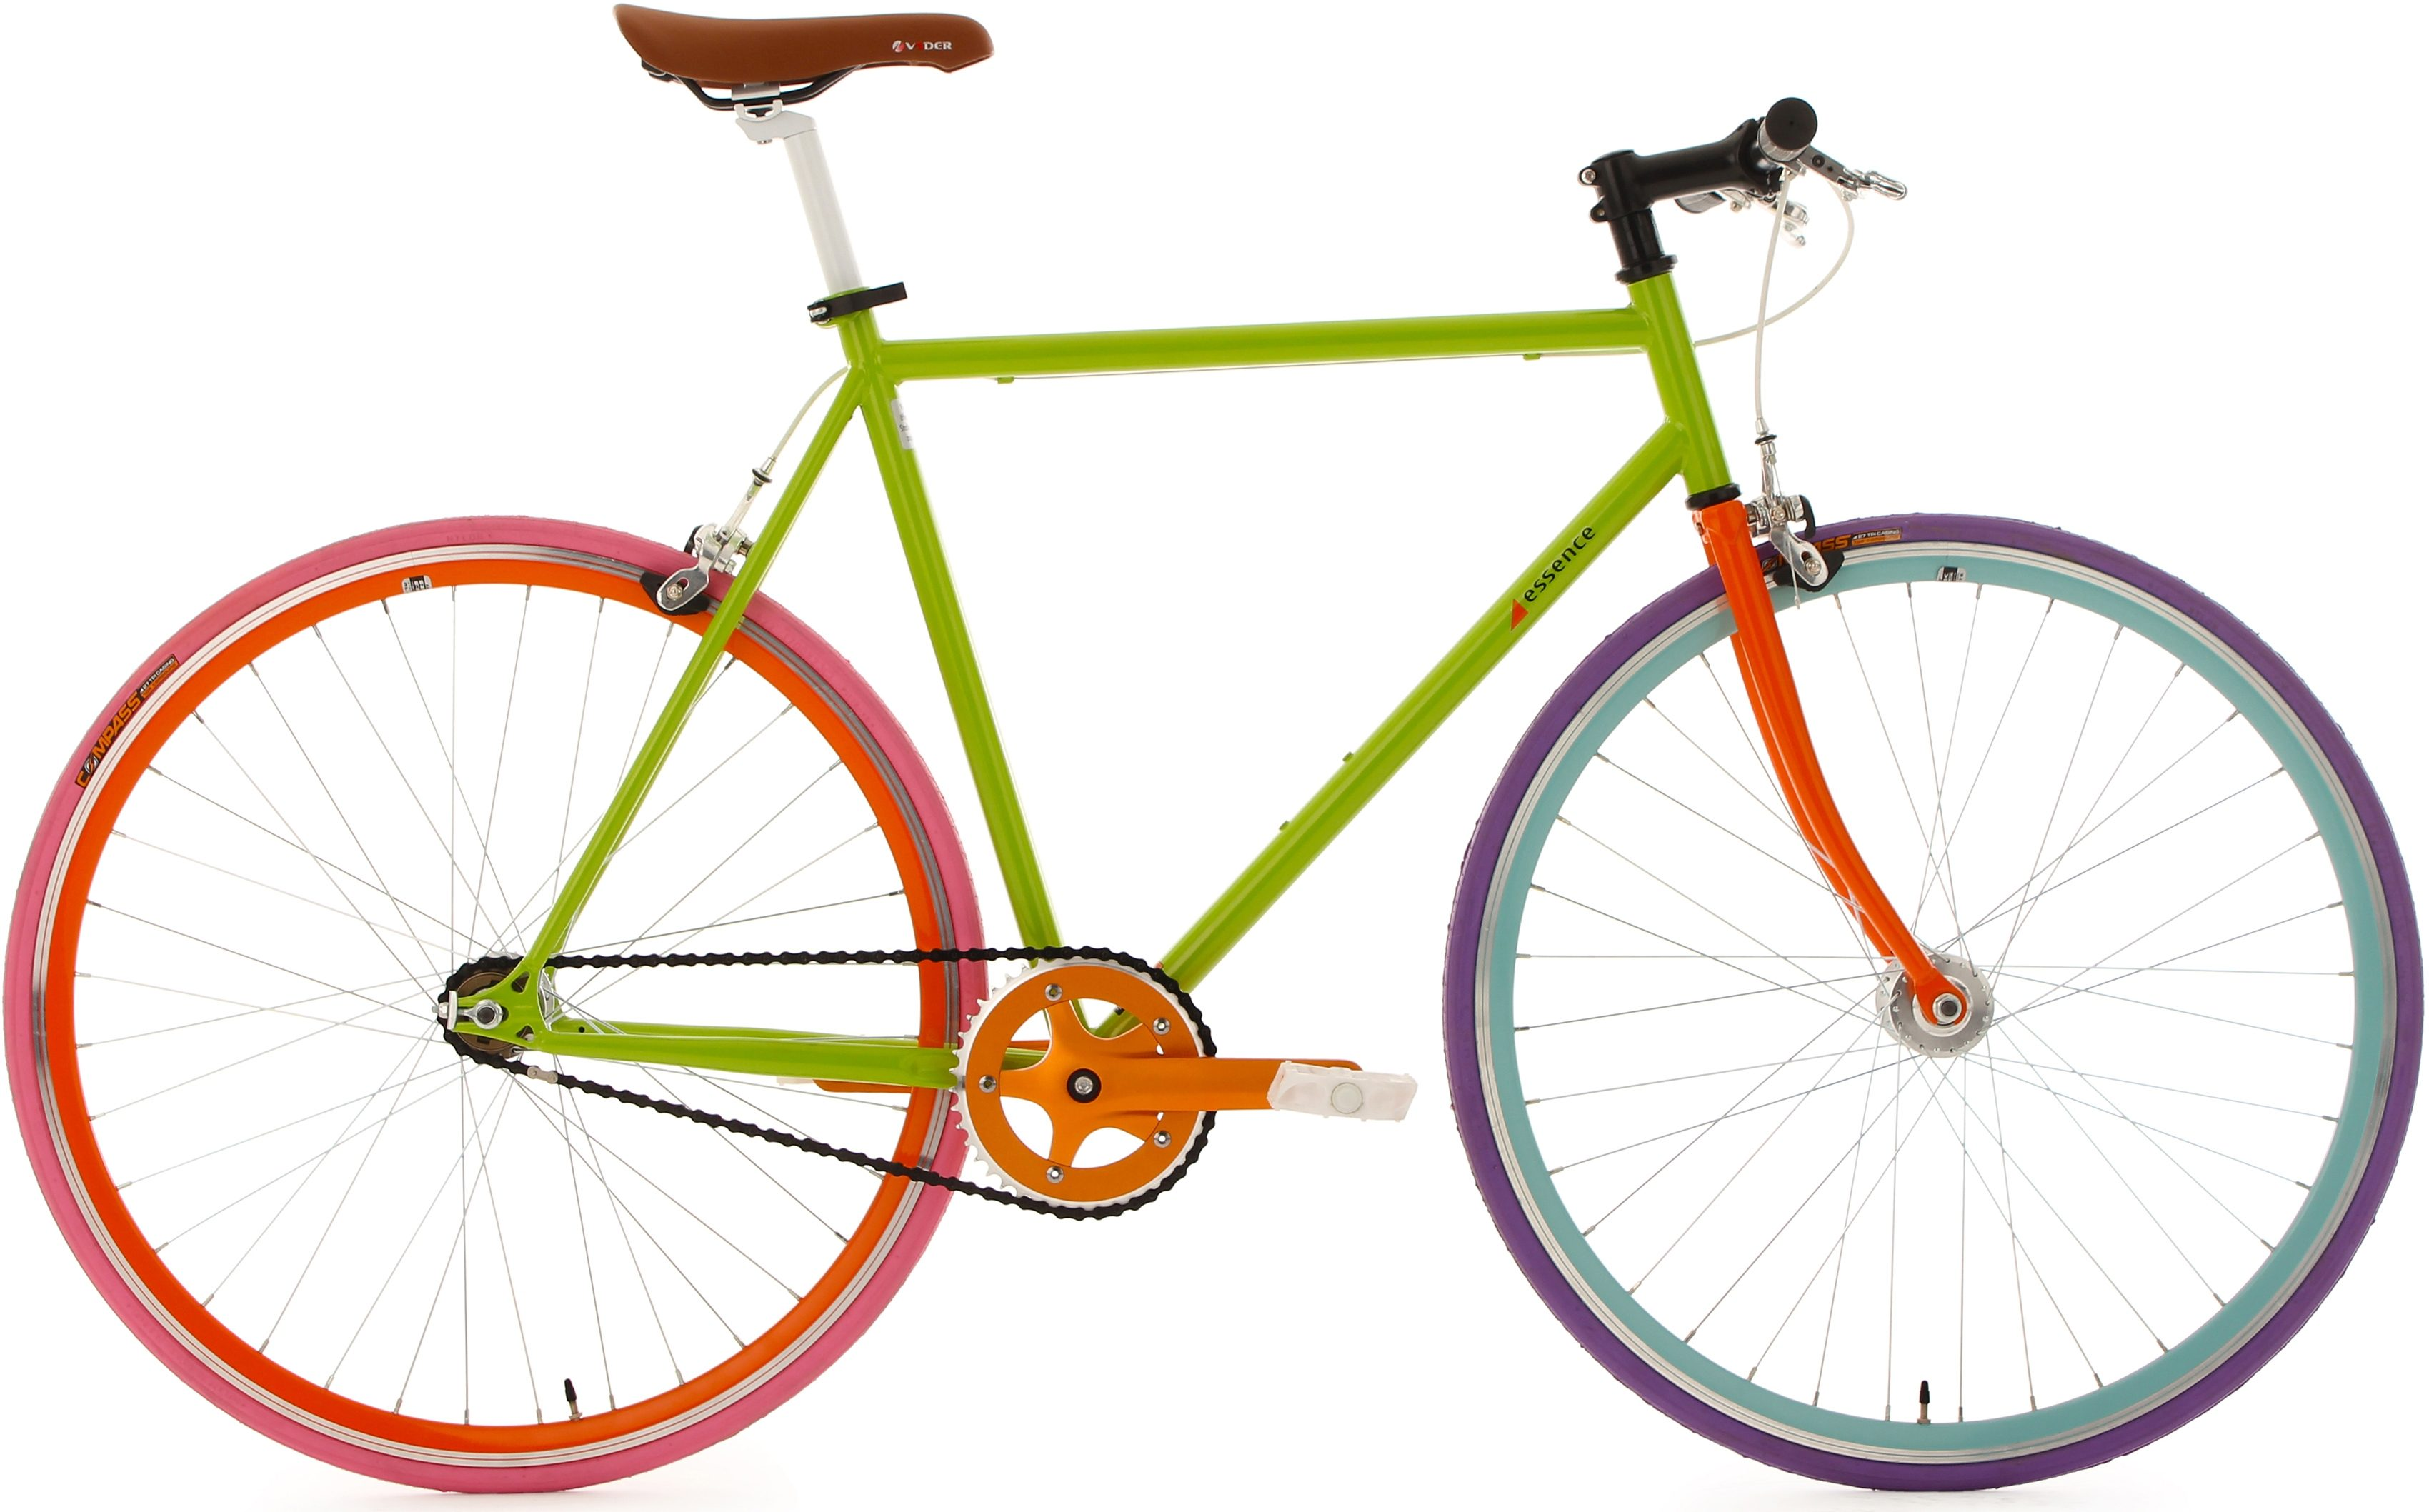 KS Cycling Fixie Fitnessrad, 28 Zoll, grün, »Essence«